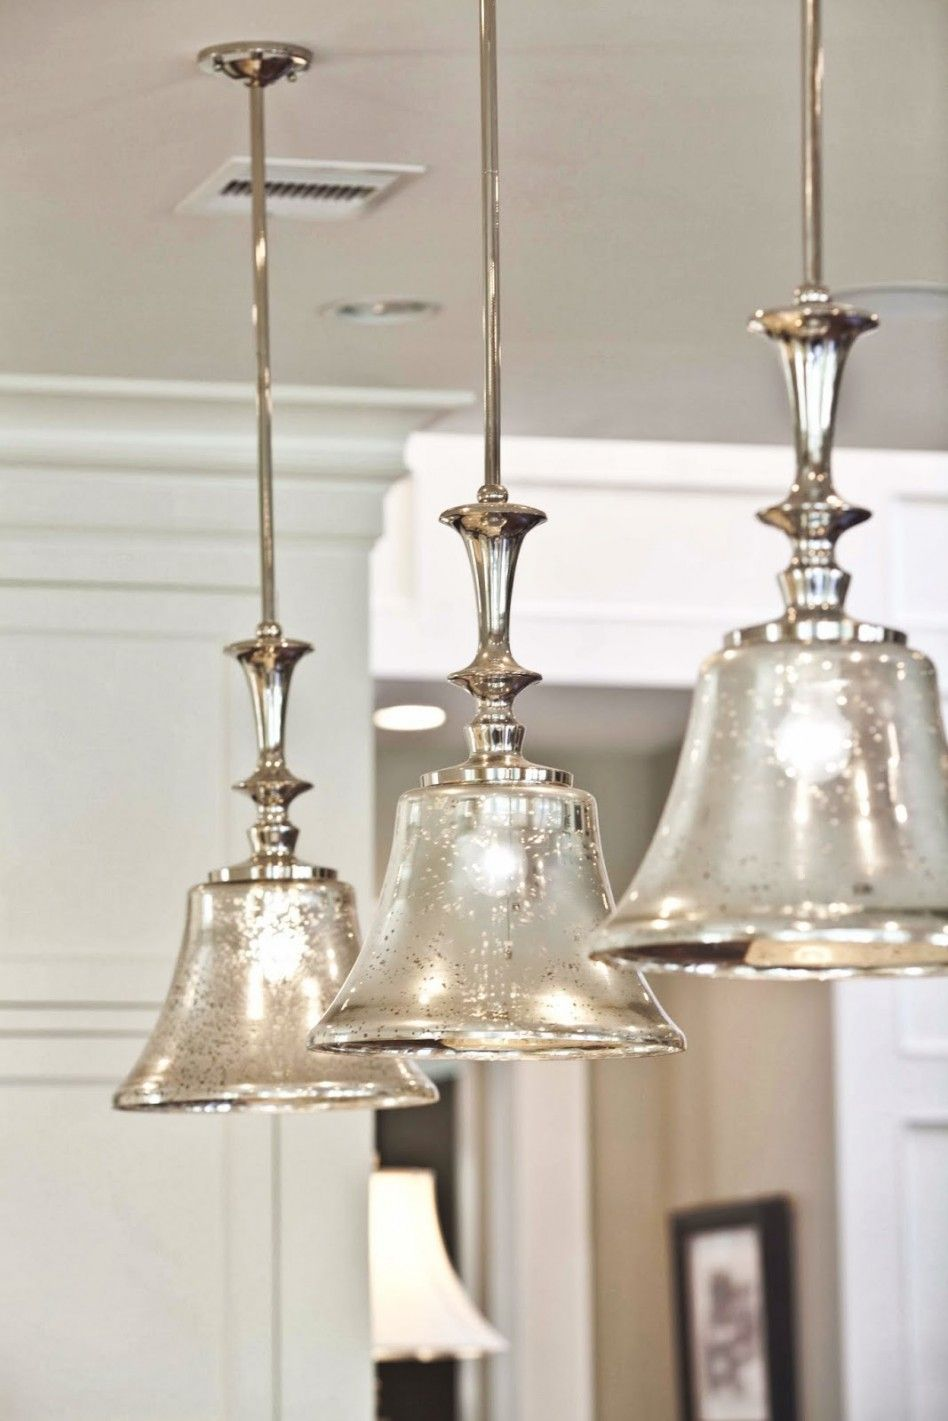 Hanging Light Fixtures For Kitchen Farmhouse Unique Decorative Lighting Google Search Cool Log